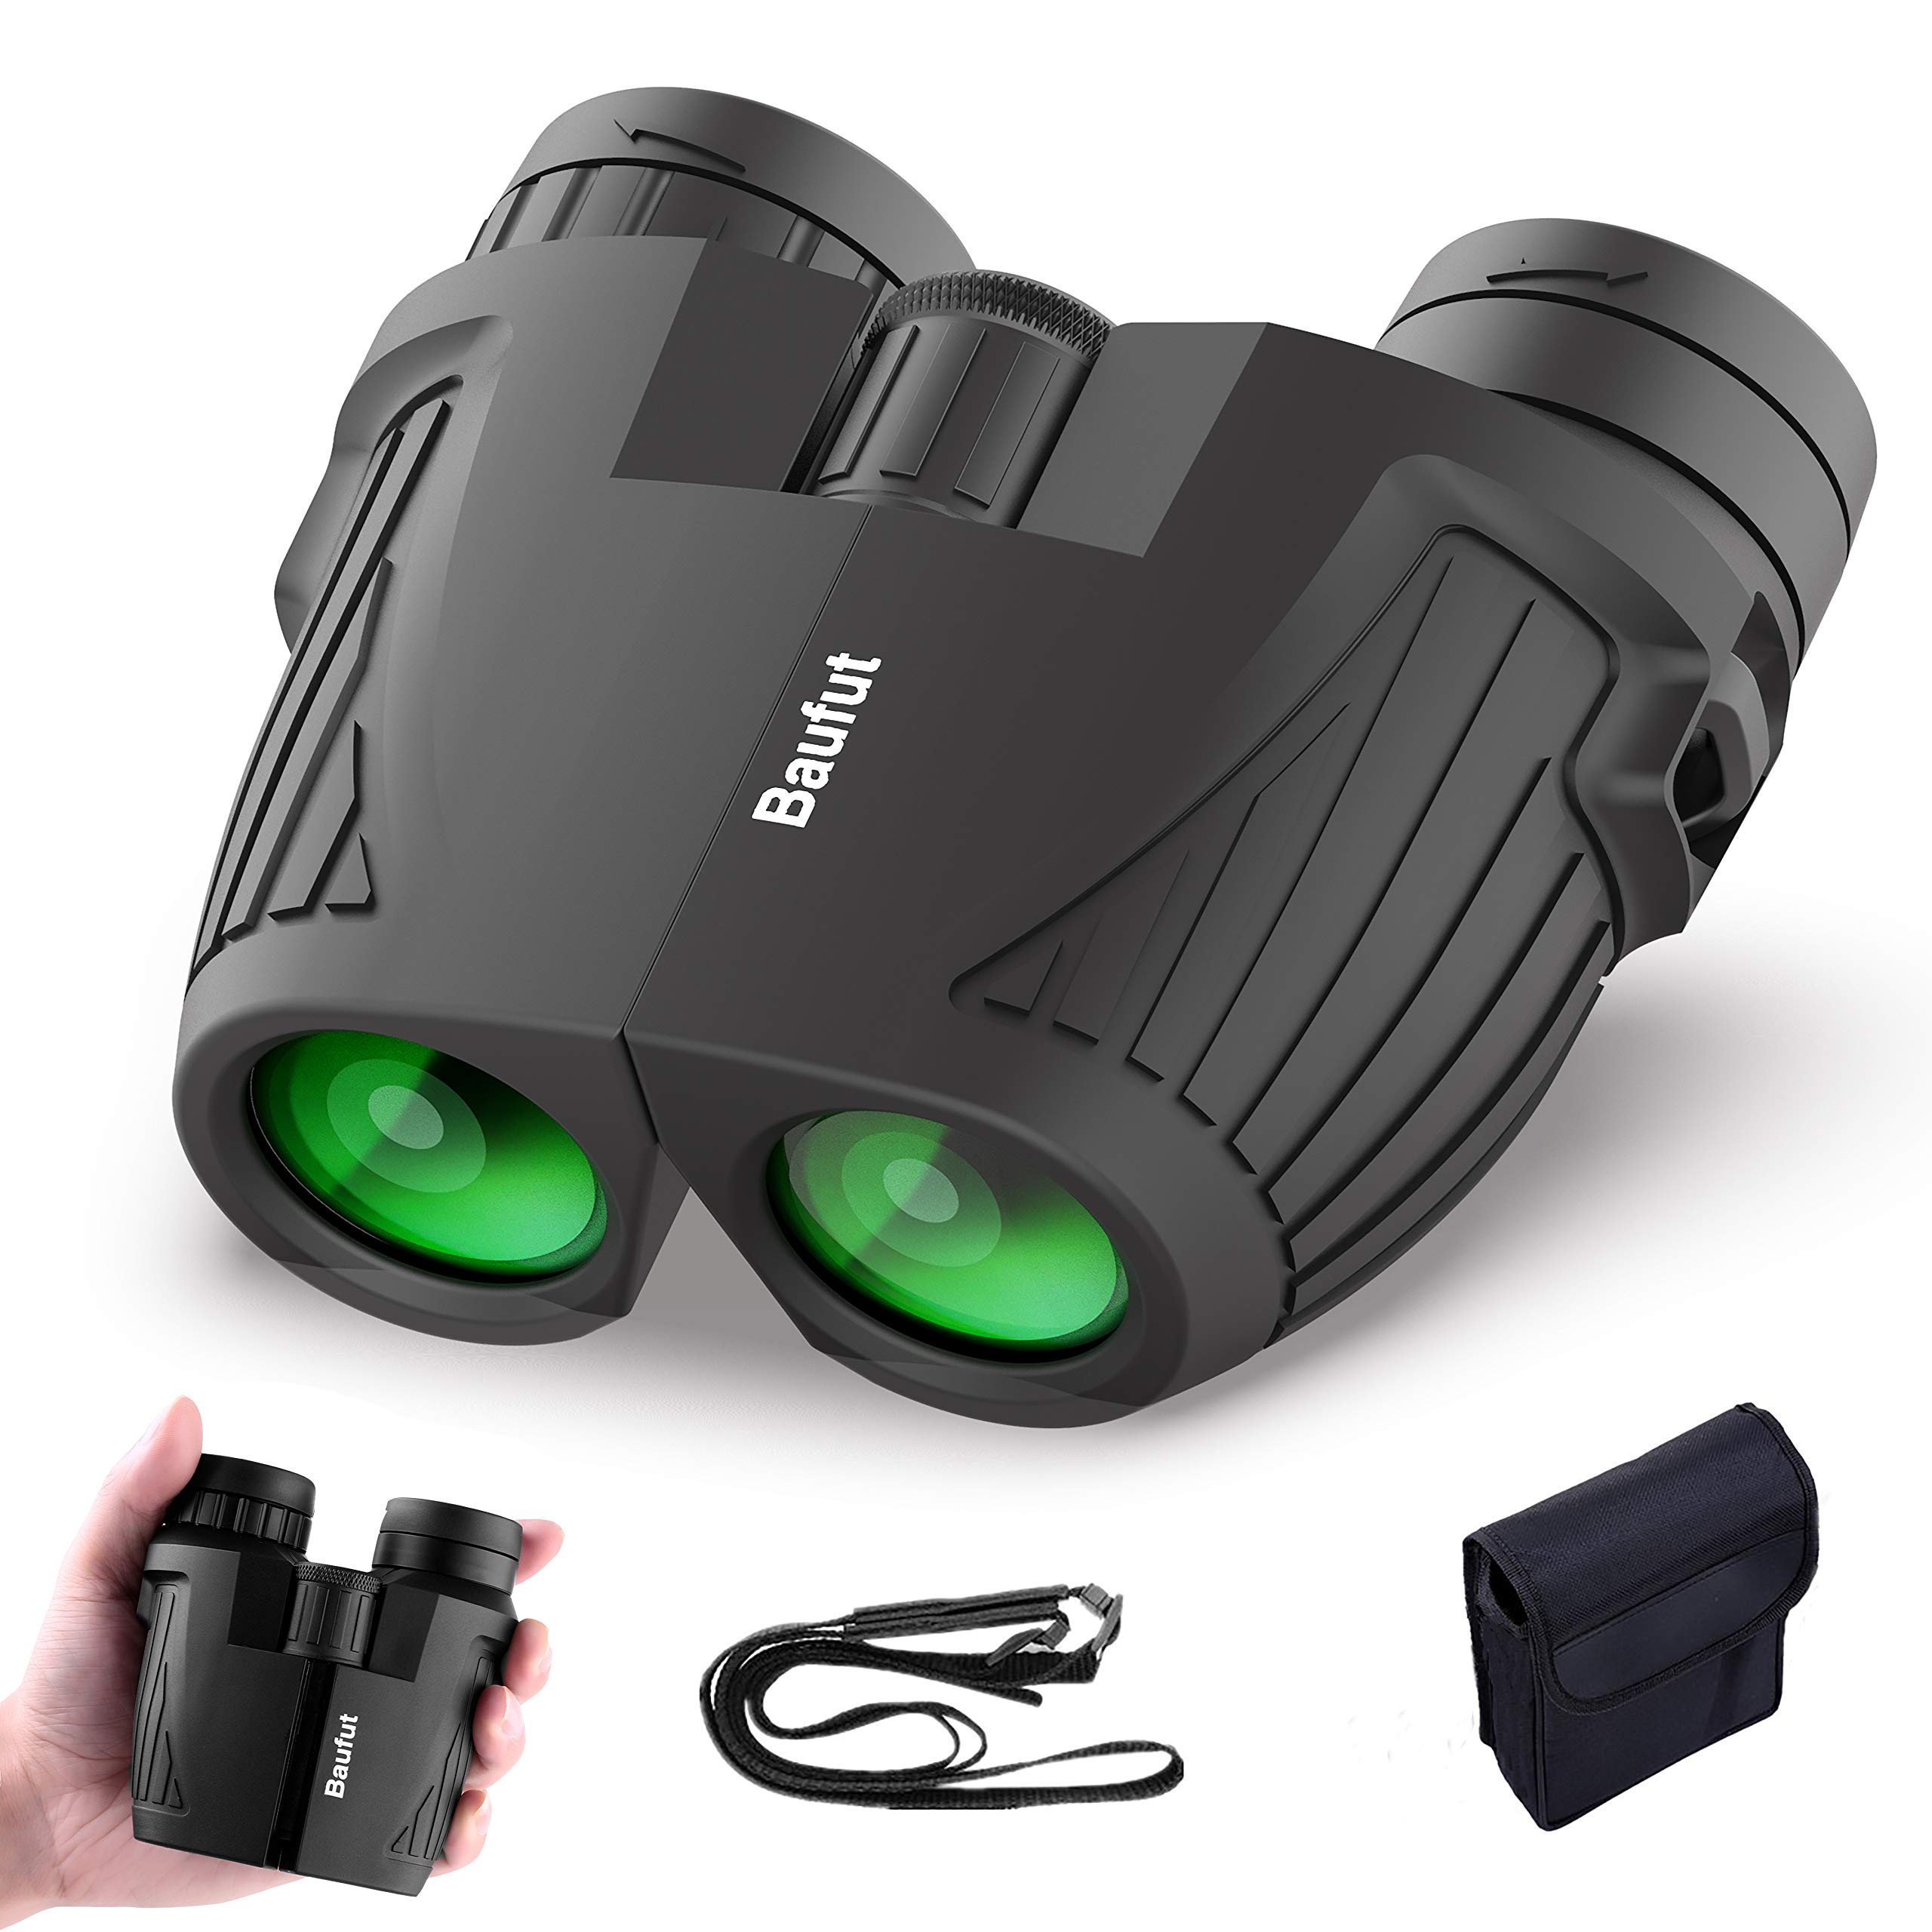 Baufut 12X25 Compact Binoculars for Adults Kids with Low Light Night Vision,High Power Waterproof Lightweight Binocular Easy Focus for Outdoor Bird Watching Hunting Concerts (12x25)